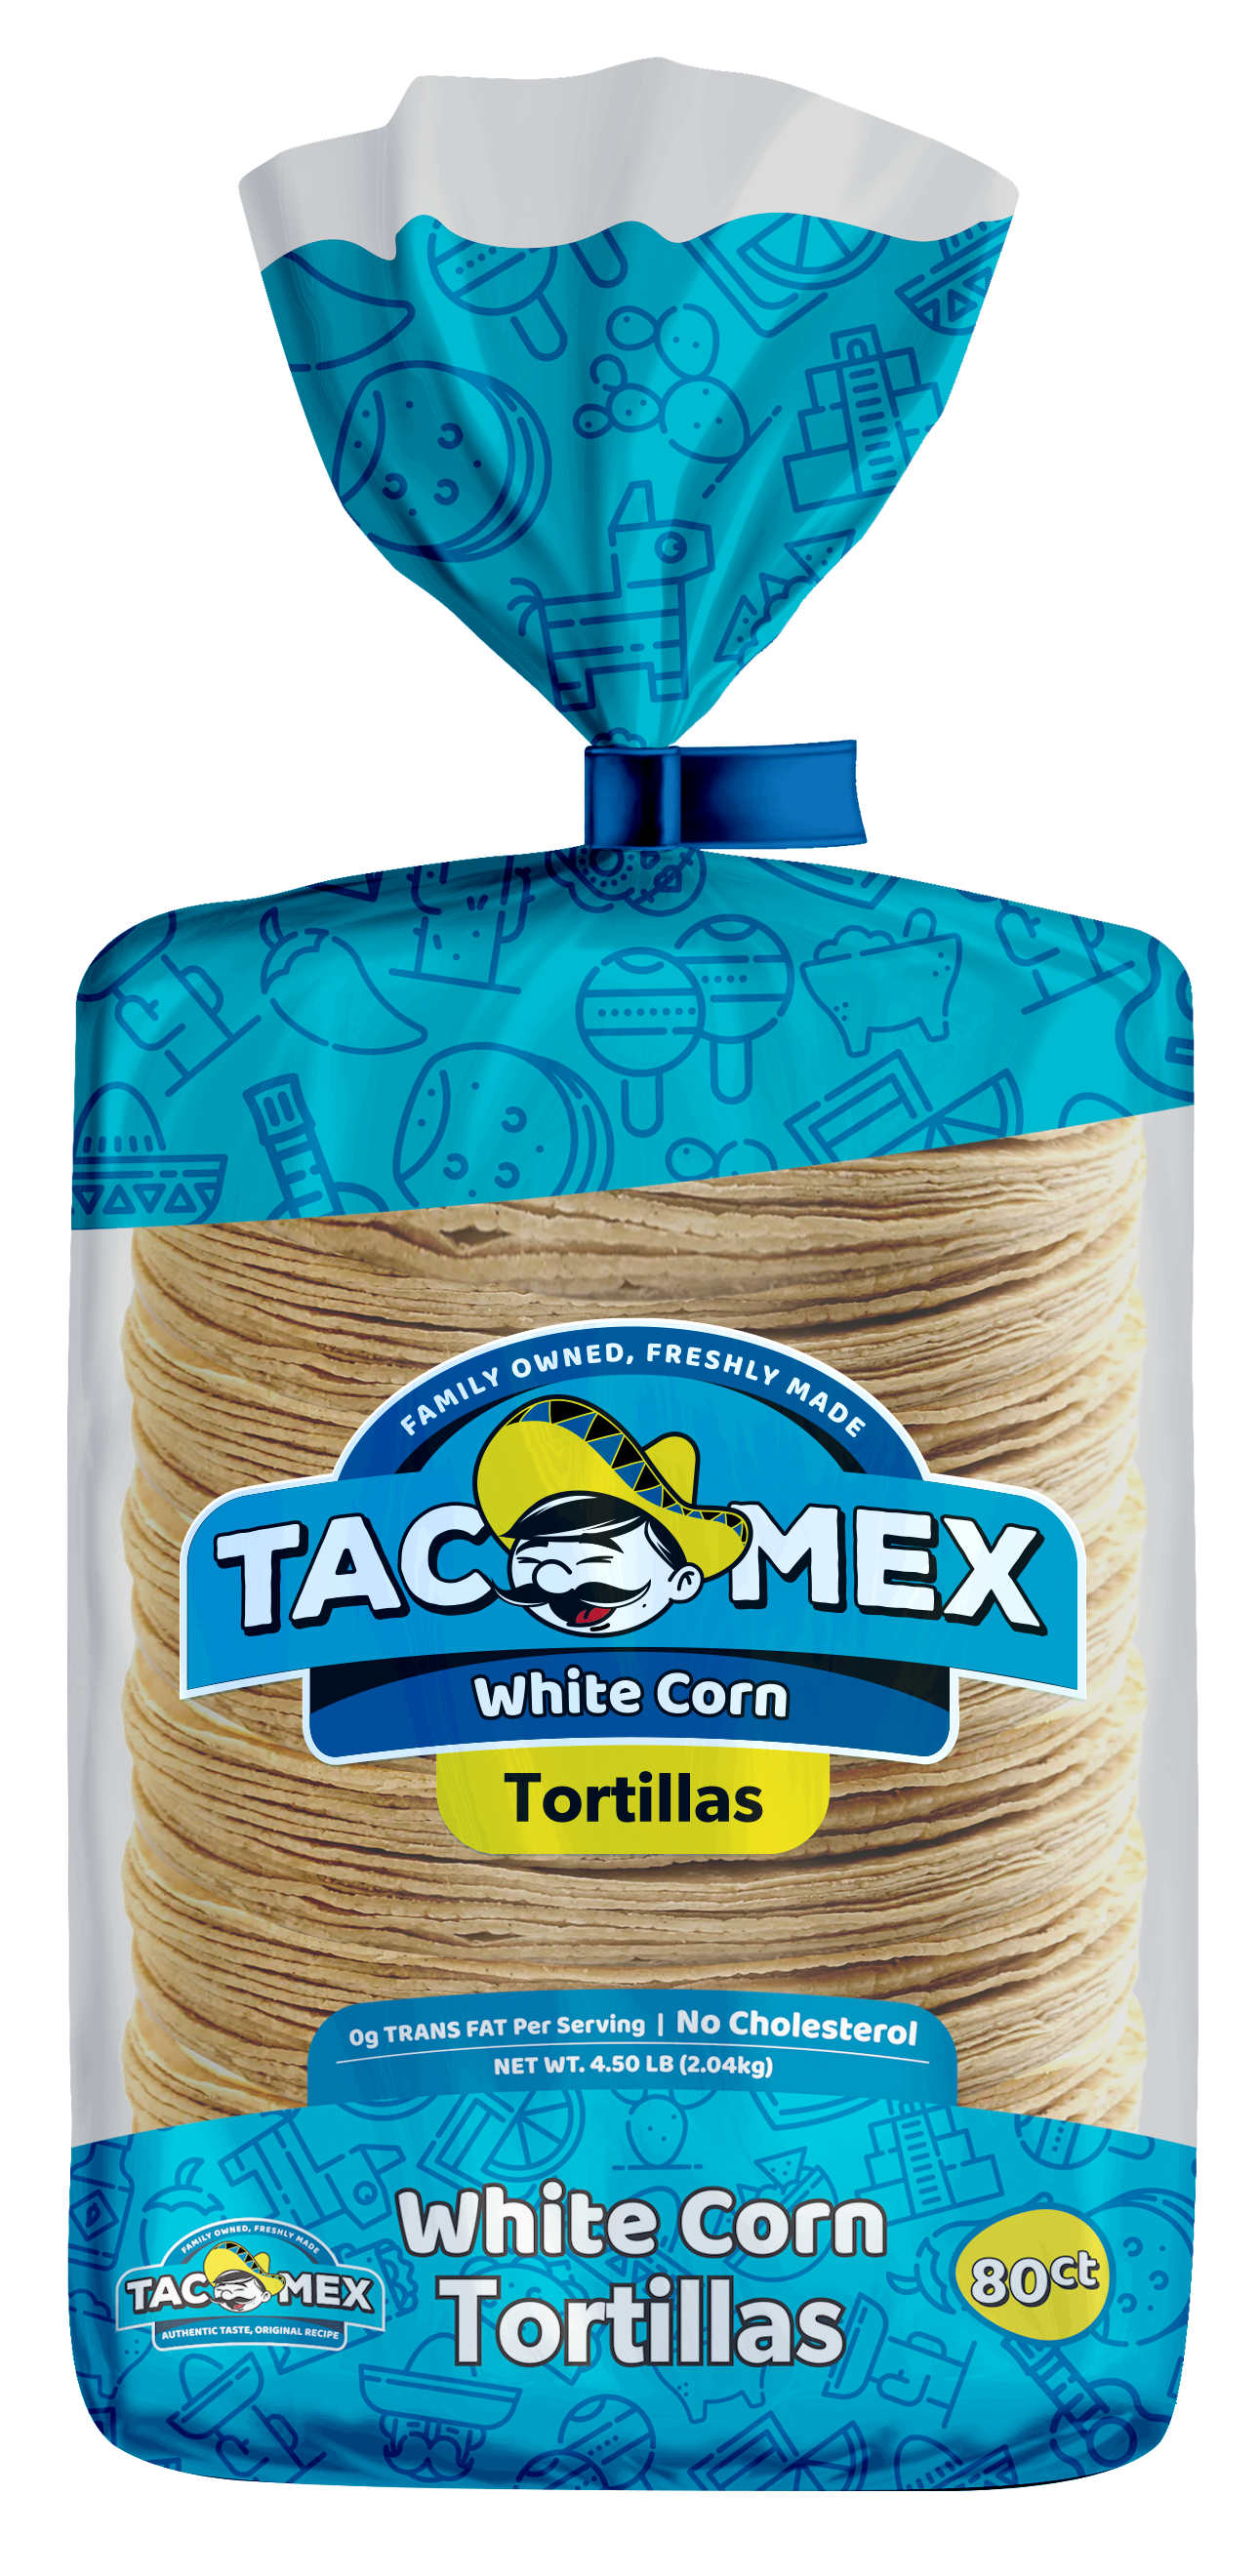 Tacomex Family Pack Corn Tortillas